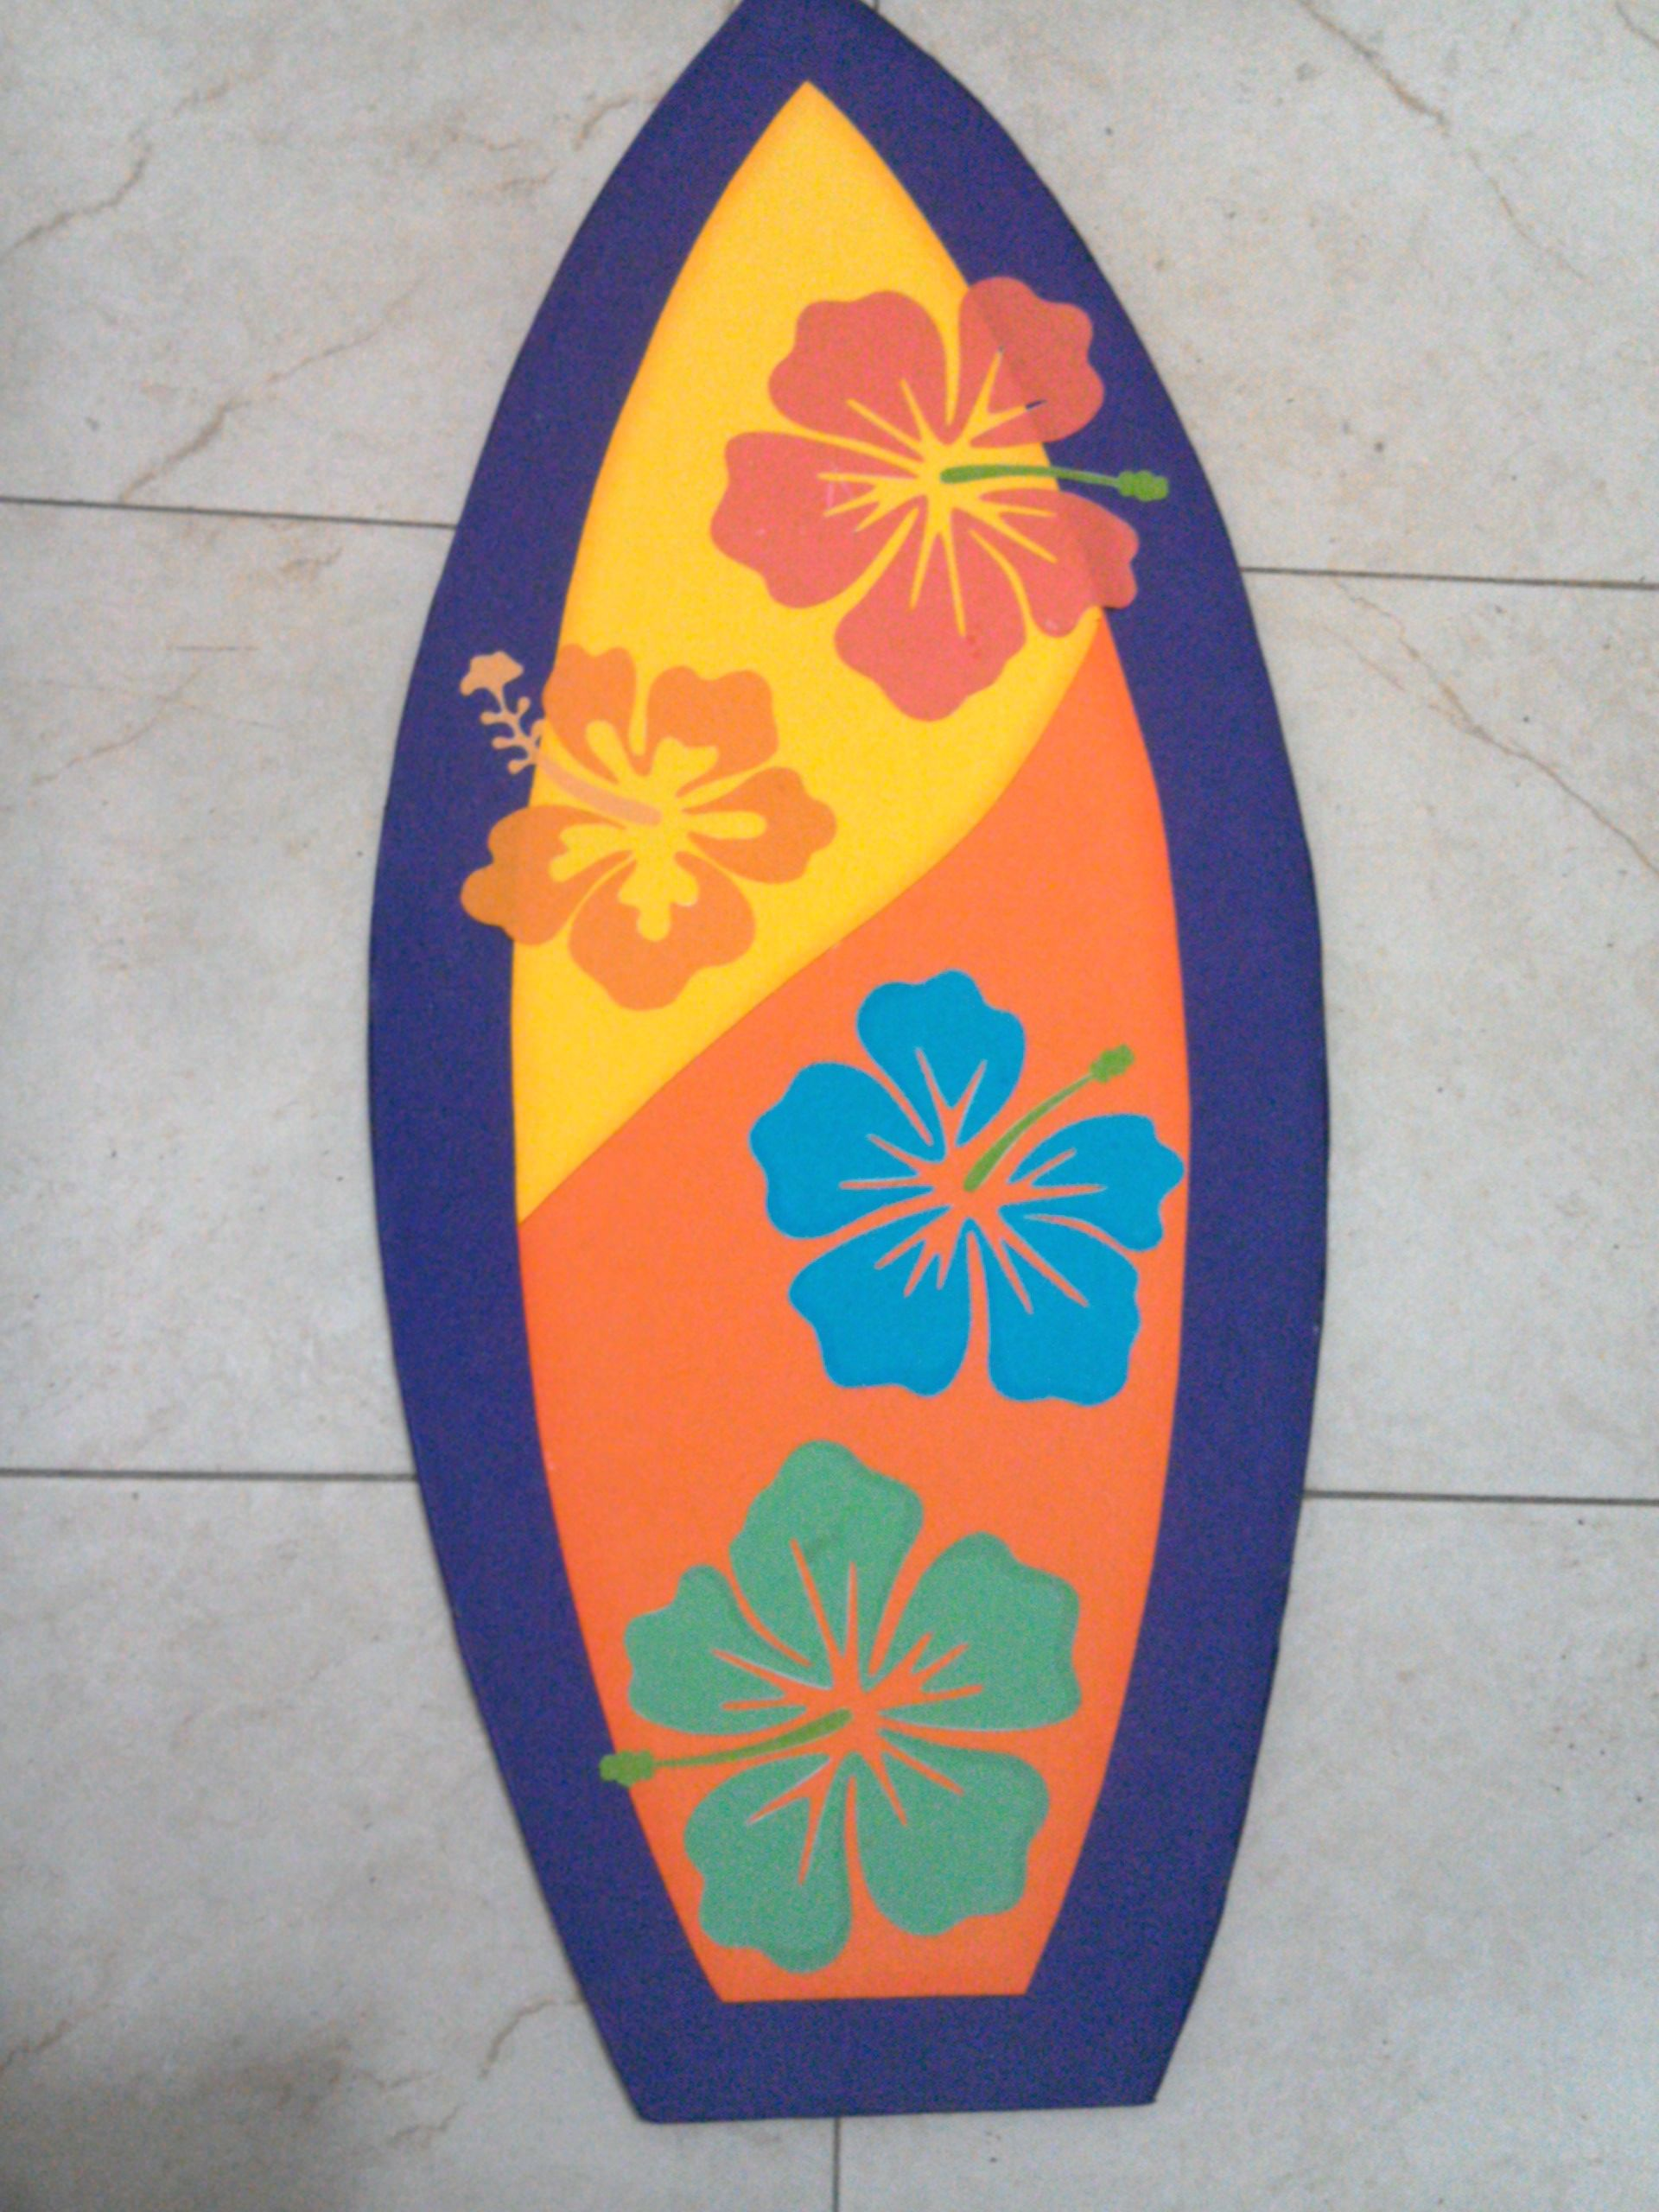 Tablas De Surf Decorativas Tabla De Surf Hecha En Foamy Para Fiesta Hawaiana